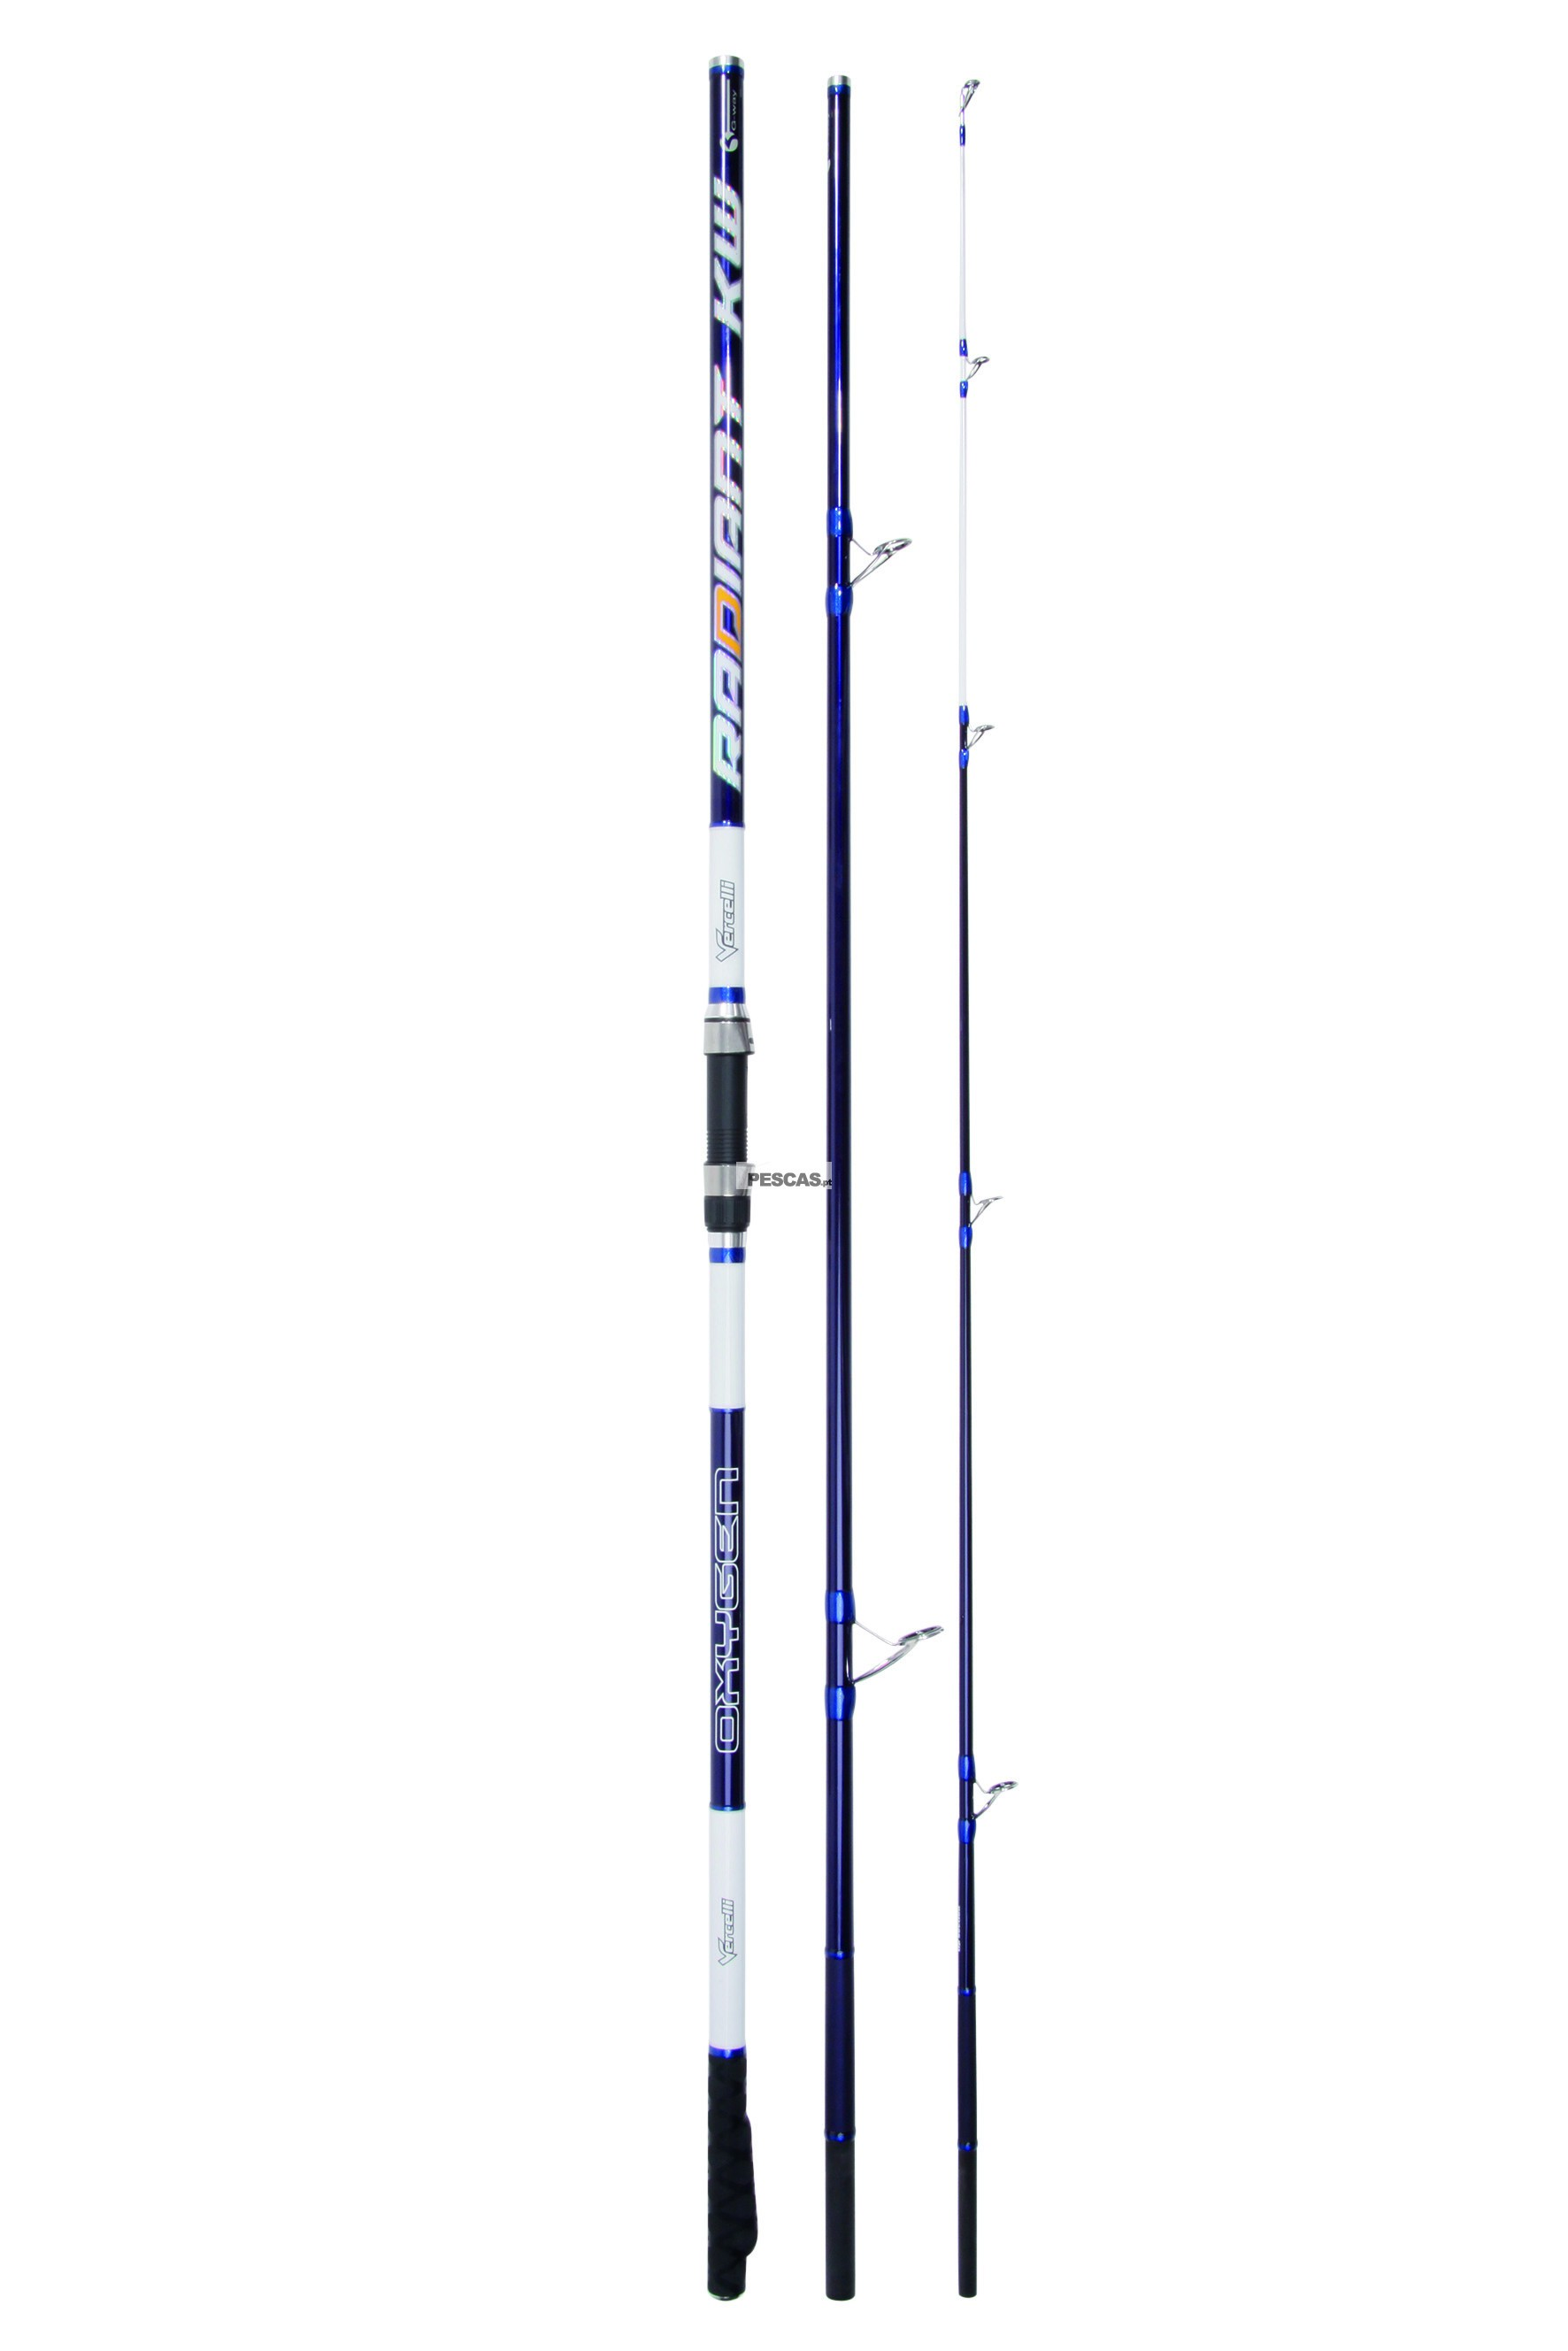 CANA VERCELLI OXYGEN RADIANT KW T 4.2M-3TR